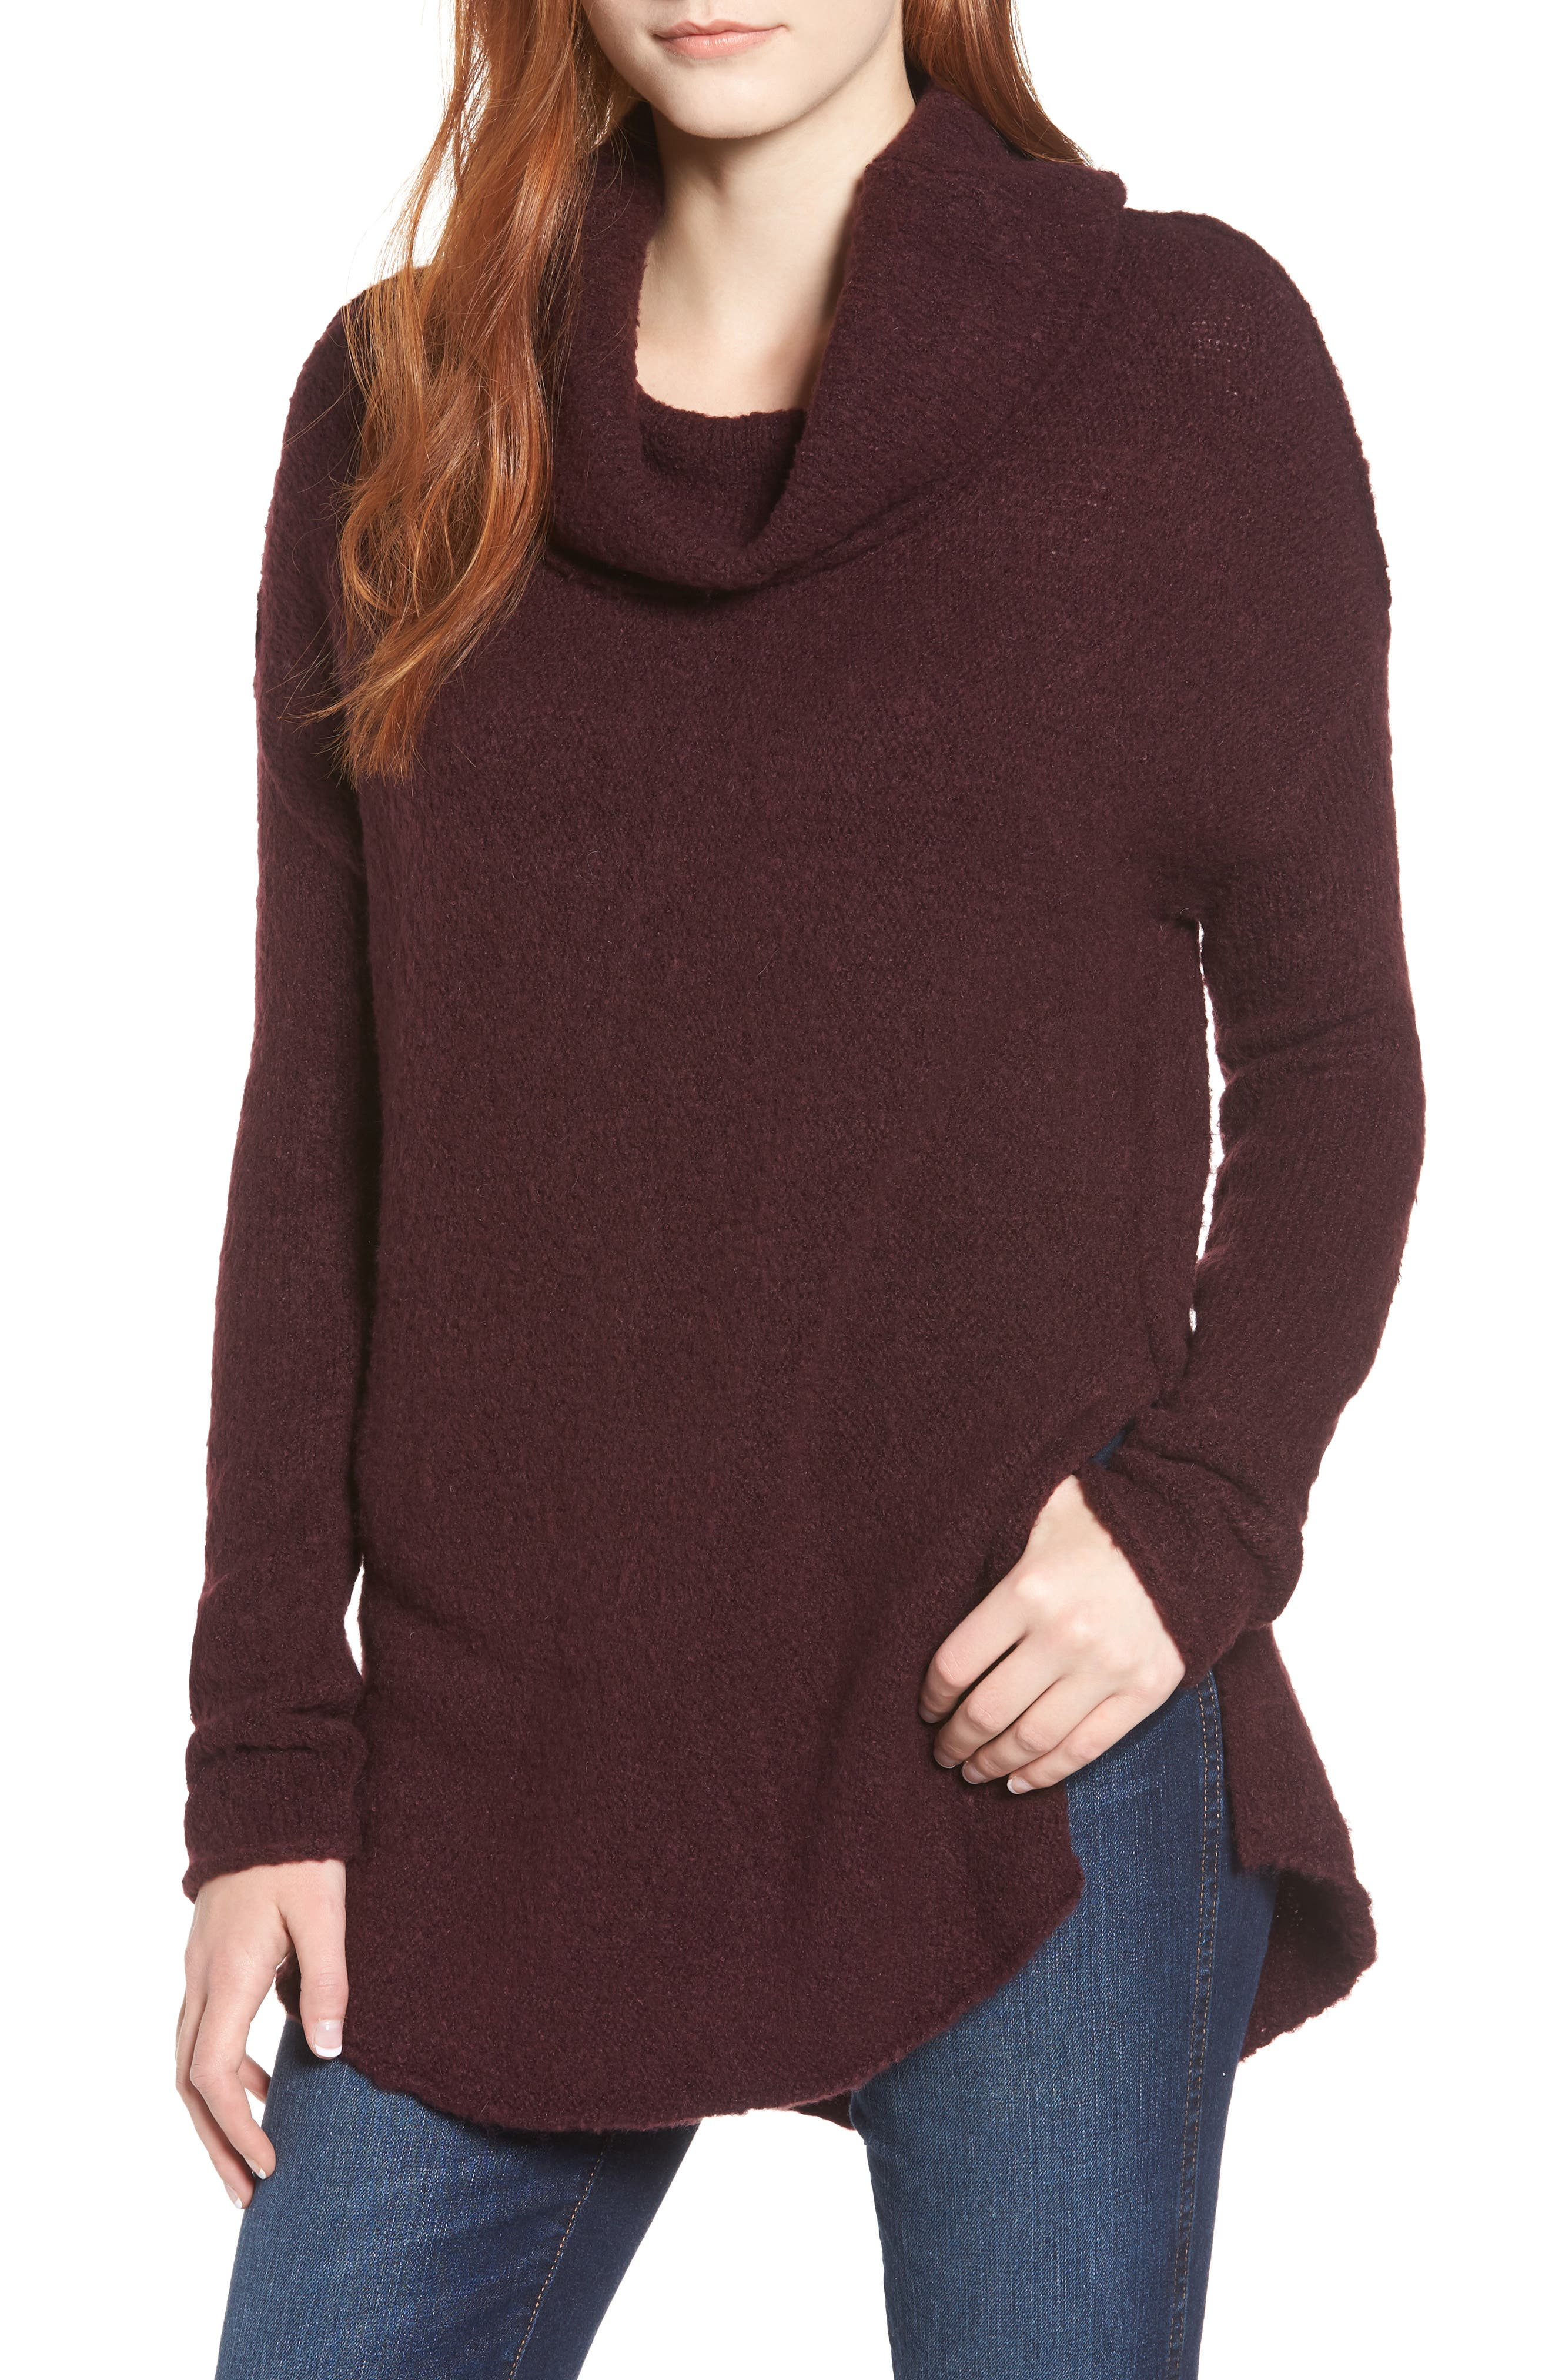 Tunic Sweater,                             Main thumbnail 1, color,                             BURGUNDY FIG